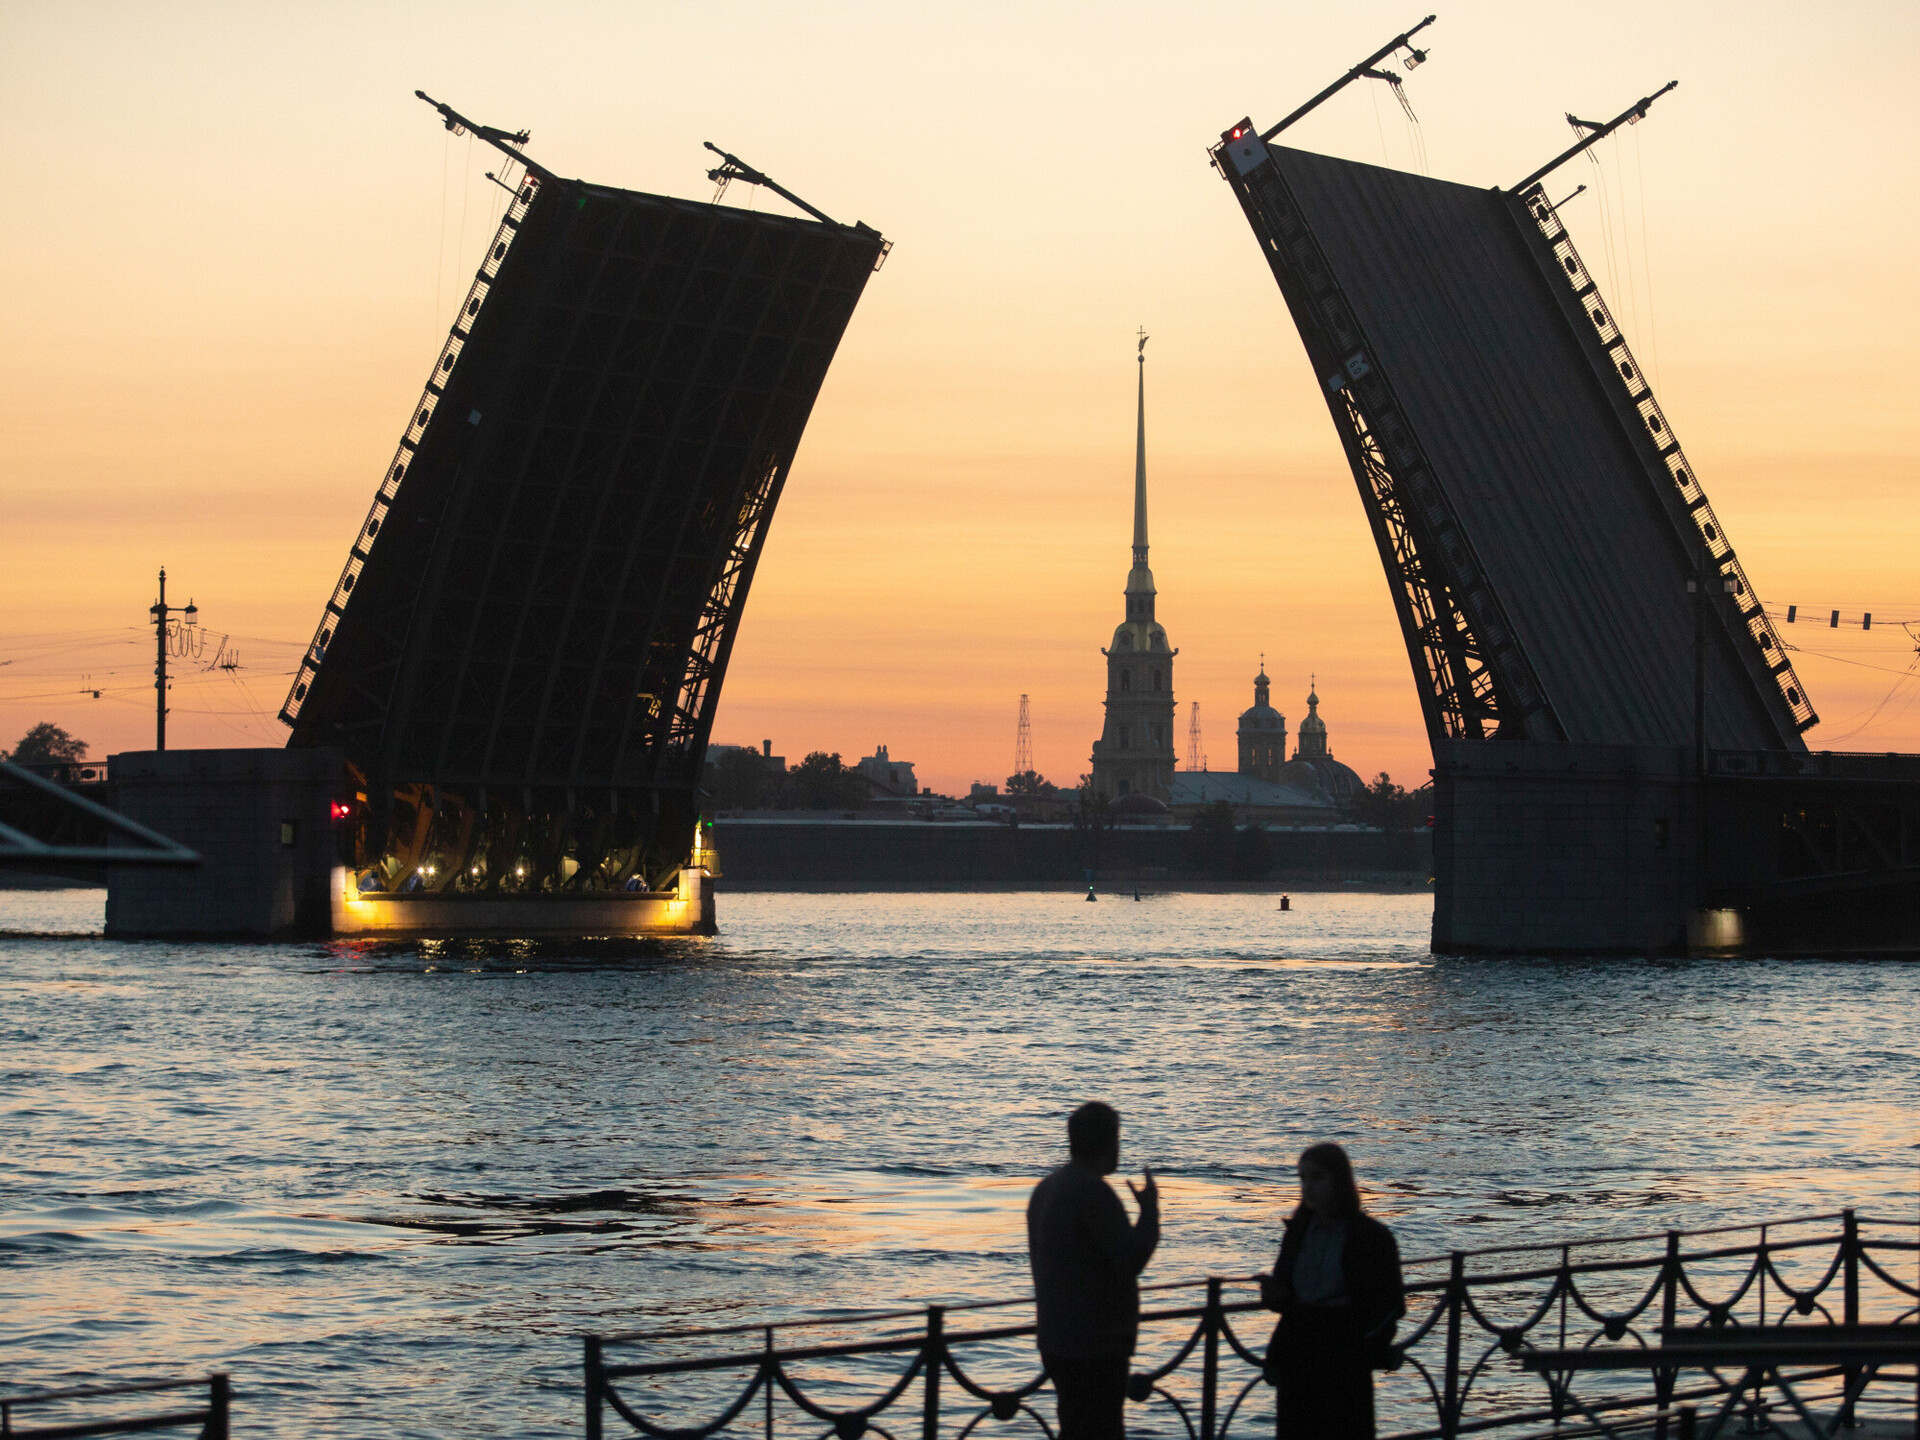 Russia hopes free visas will promote St  Petersburg tourism, improve